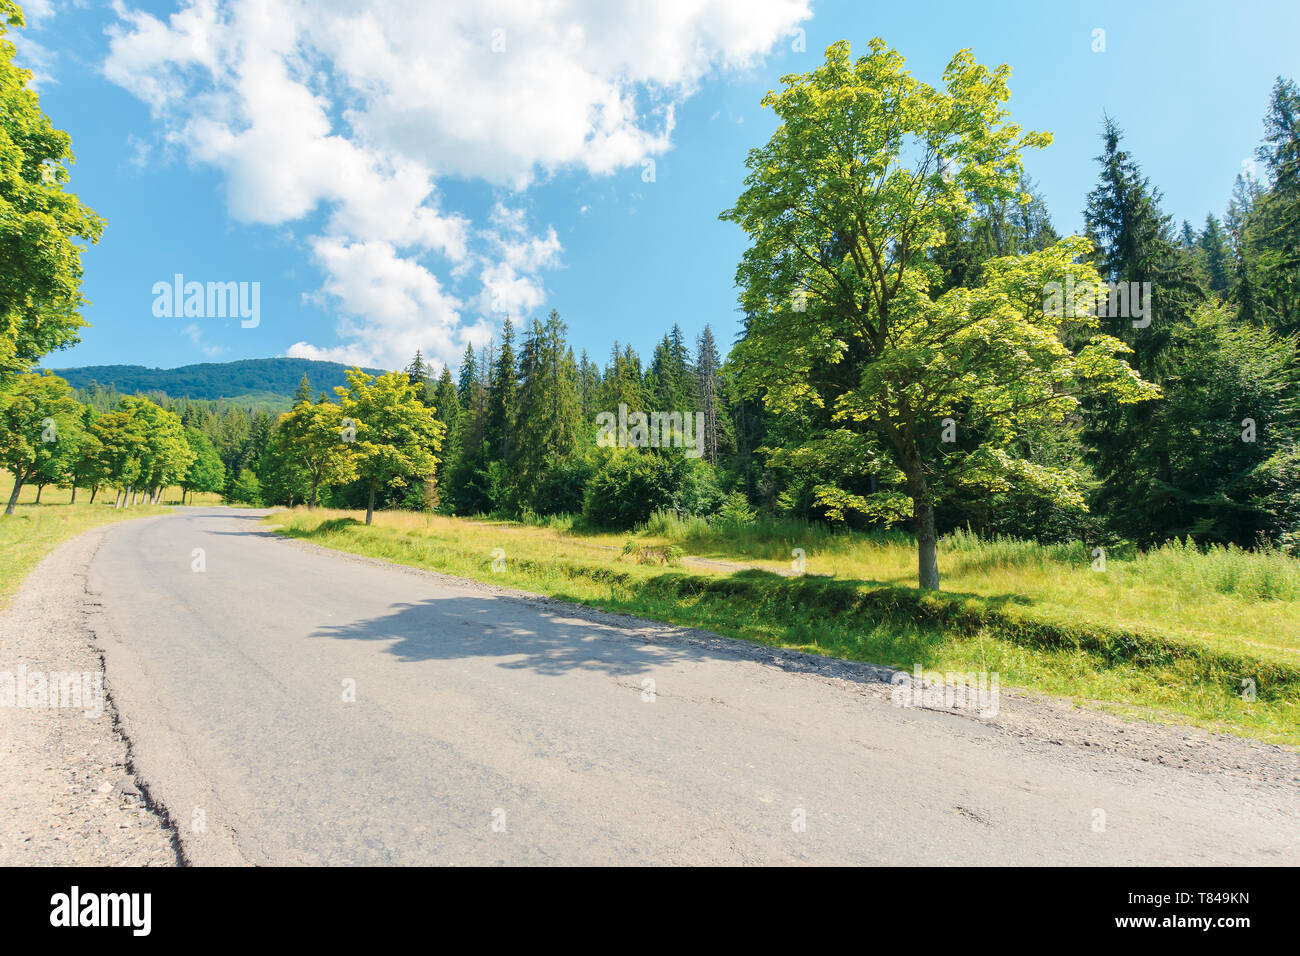 old country road in to the mountains. nature scenery with trees along the way. sunny summer landscape with clouds on a blue sky - Stock Image